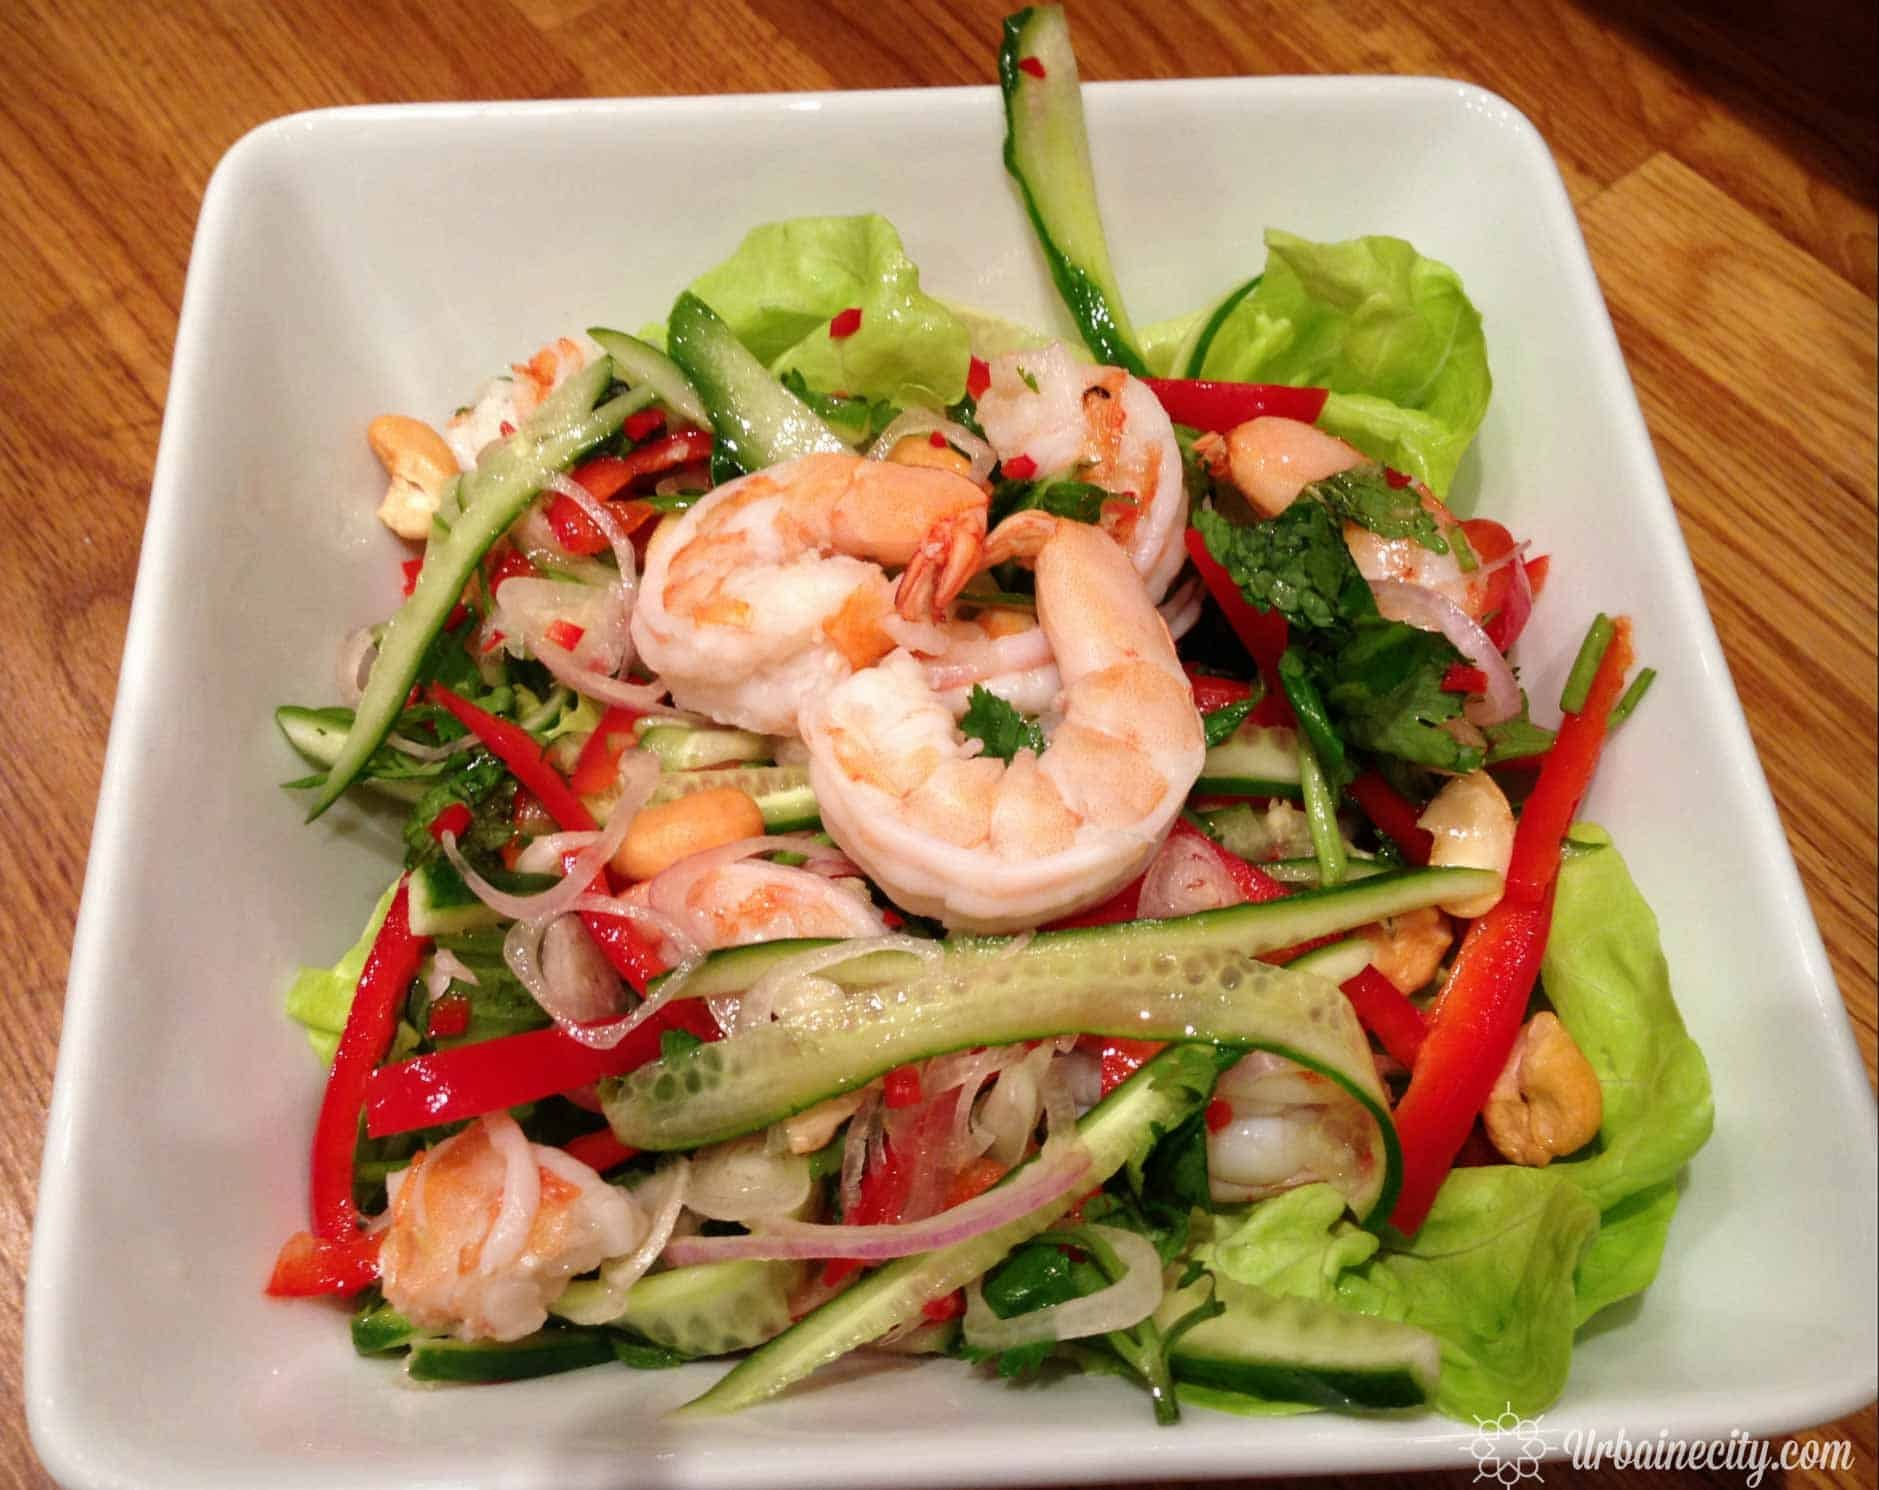 Salade asiatique aux fruits de mer